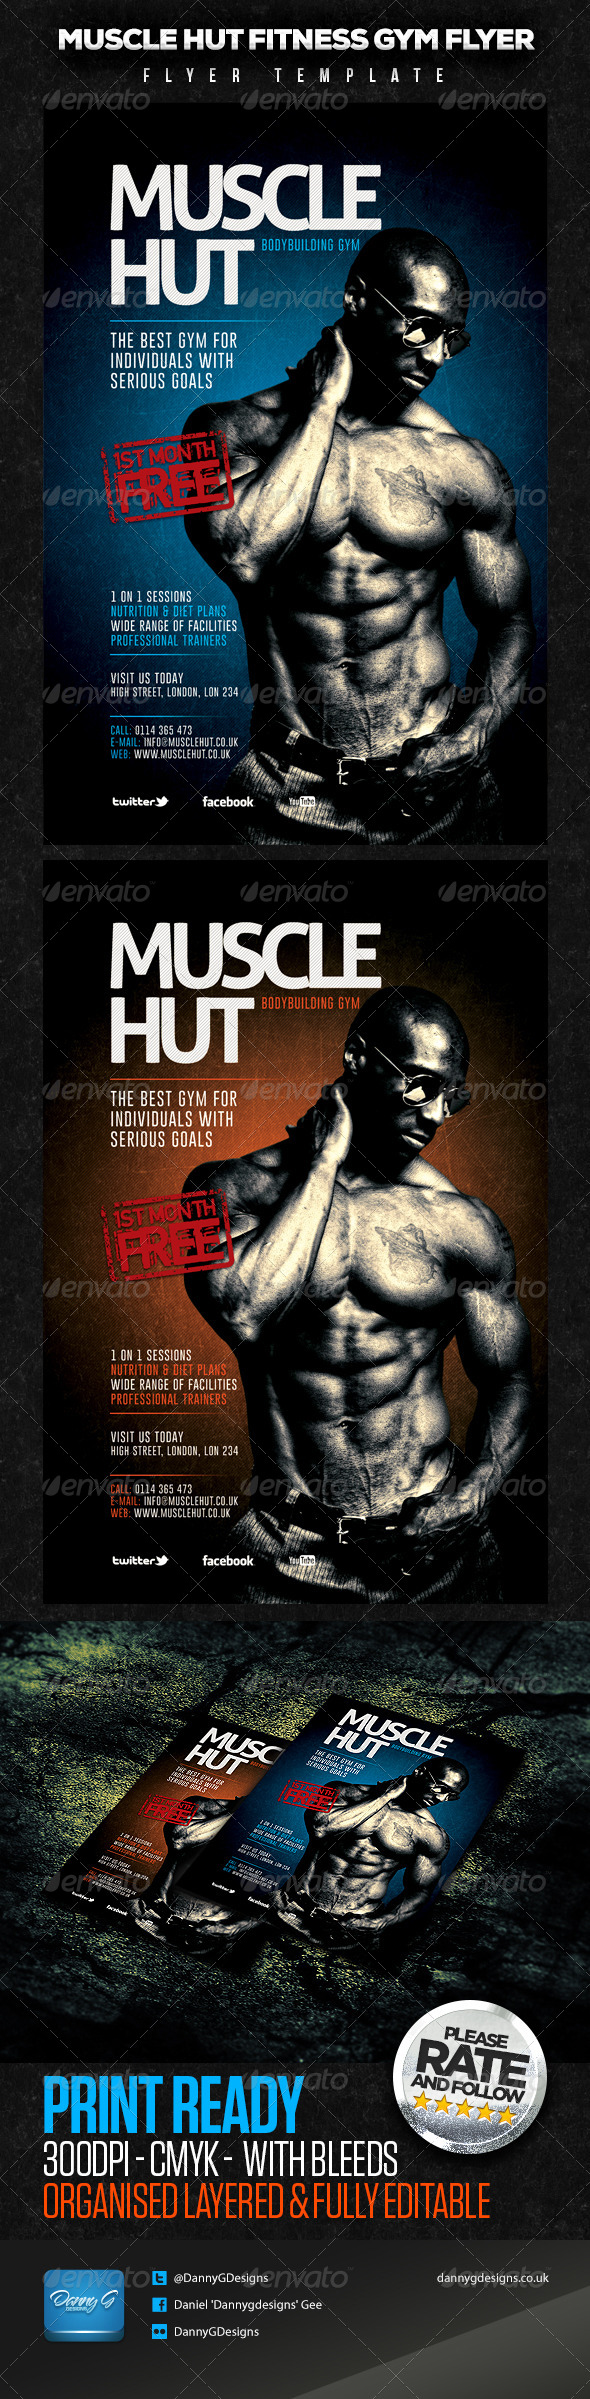 Muscle Hut Bodybuilding/Fitness Flyer Template